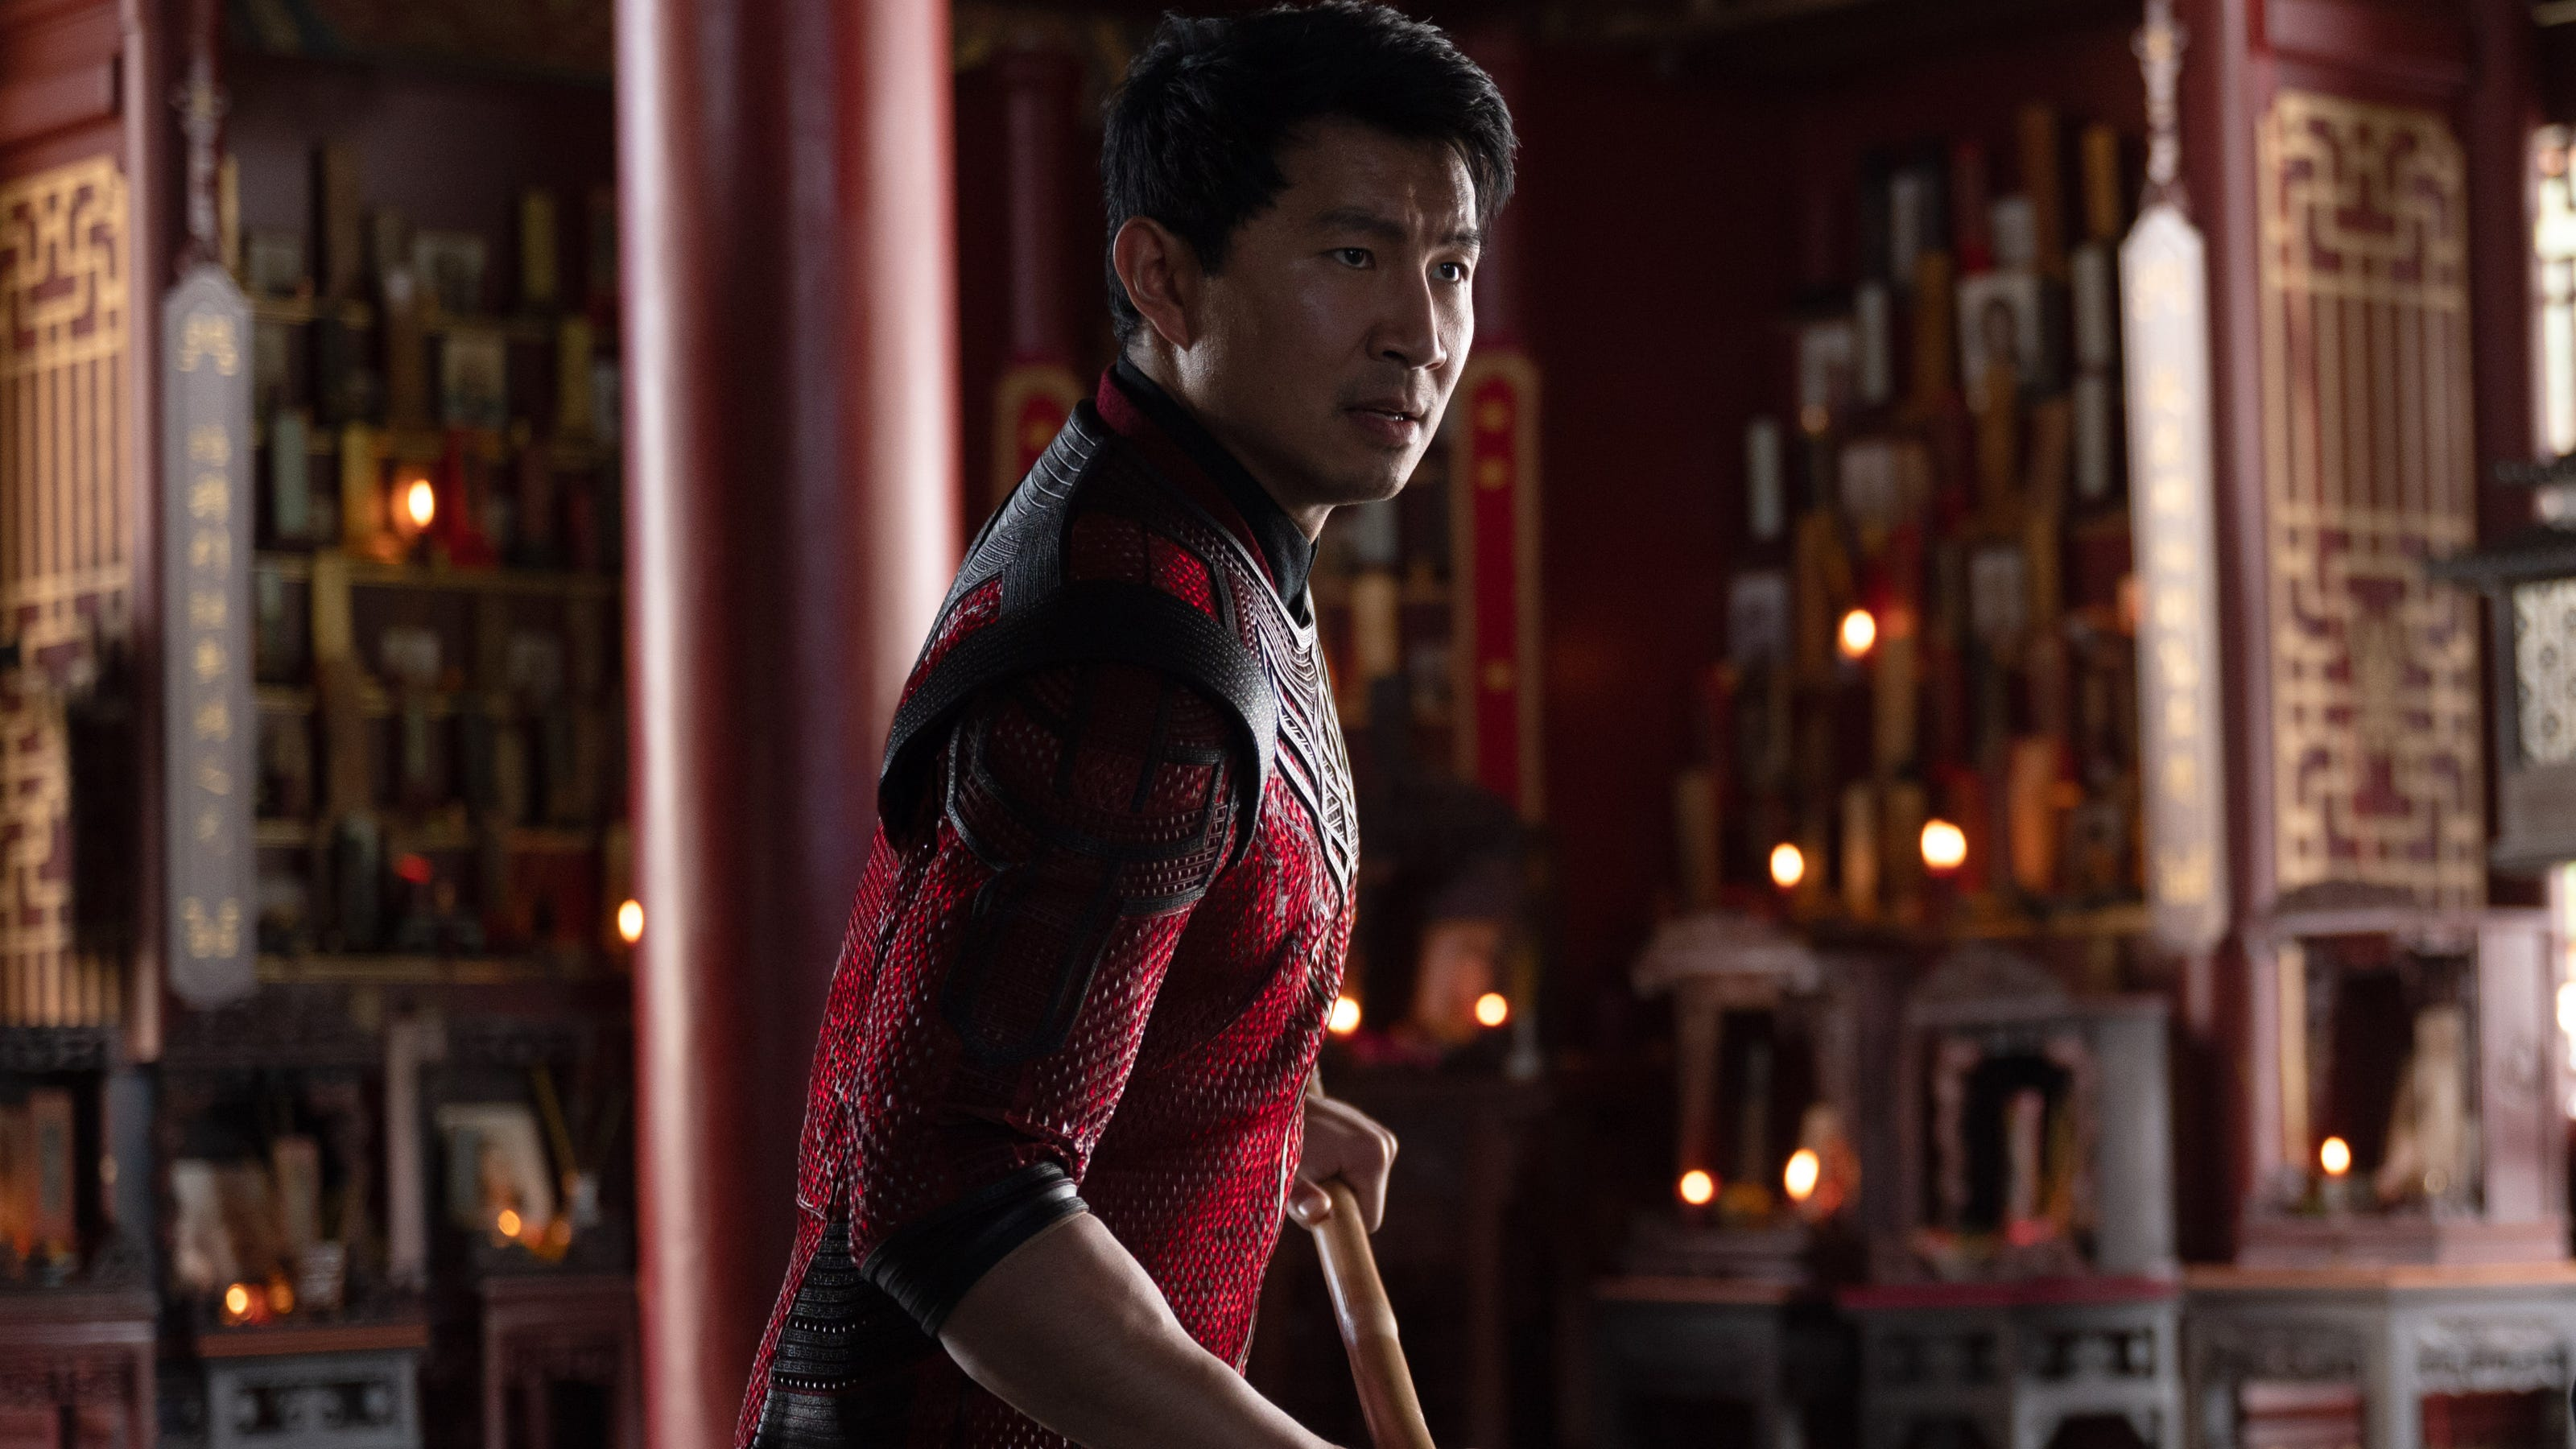 www.northjersey.com: For Asian movie fans, Marvel's Shang-Chi stirs pride and controversy | Mary Chao